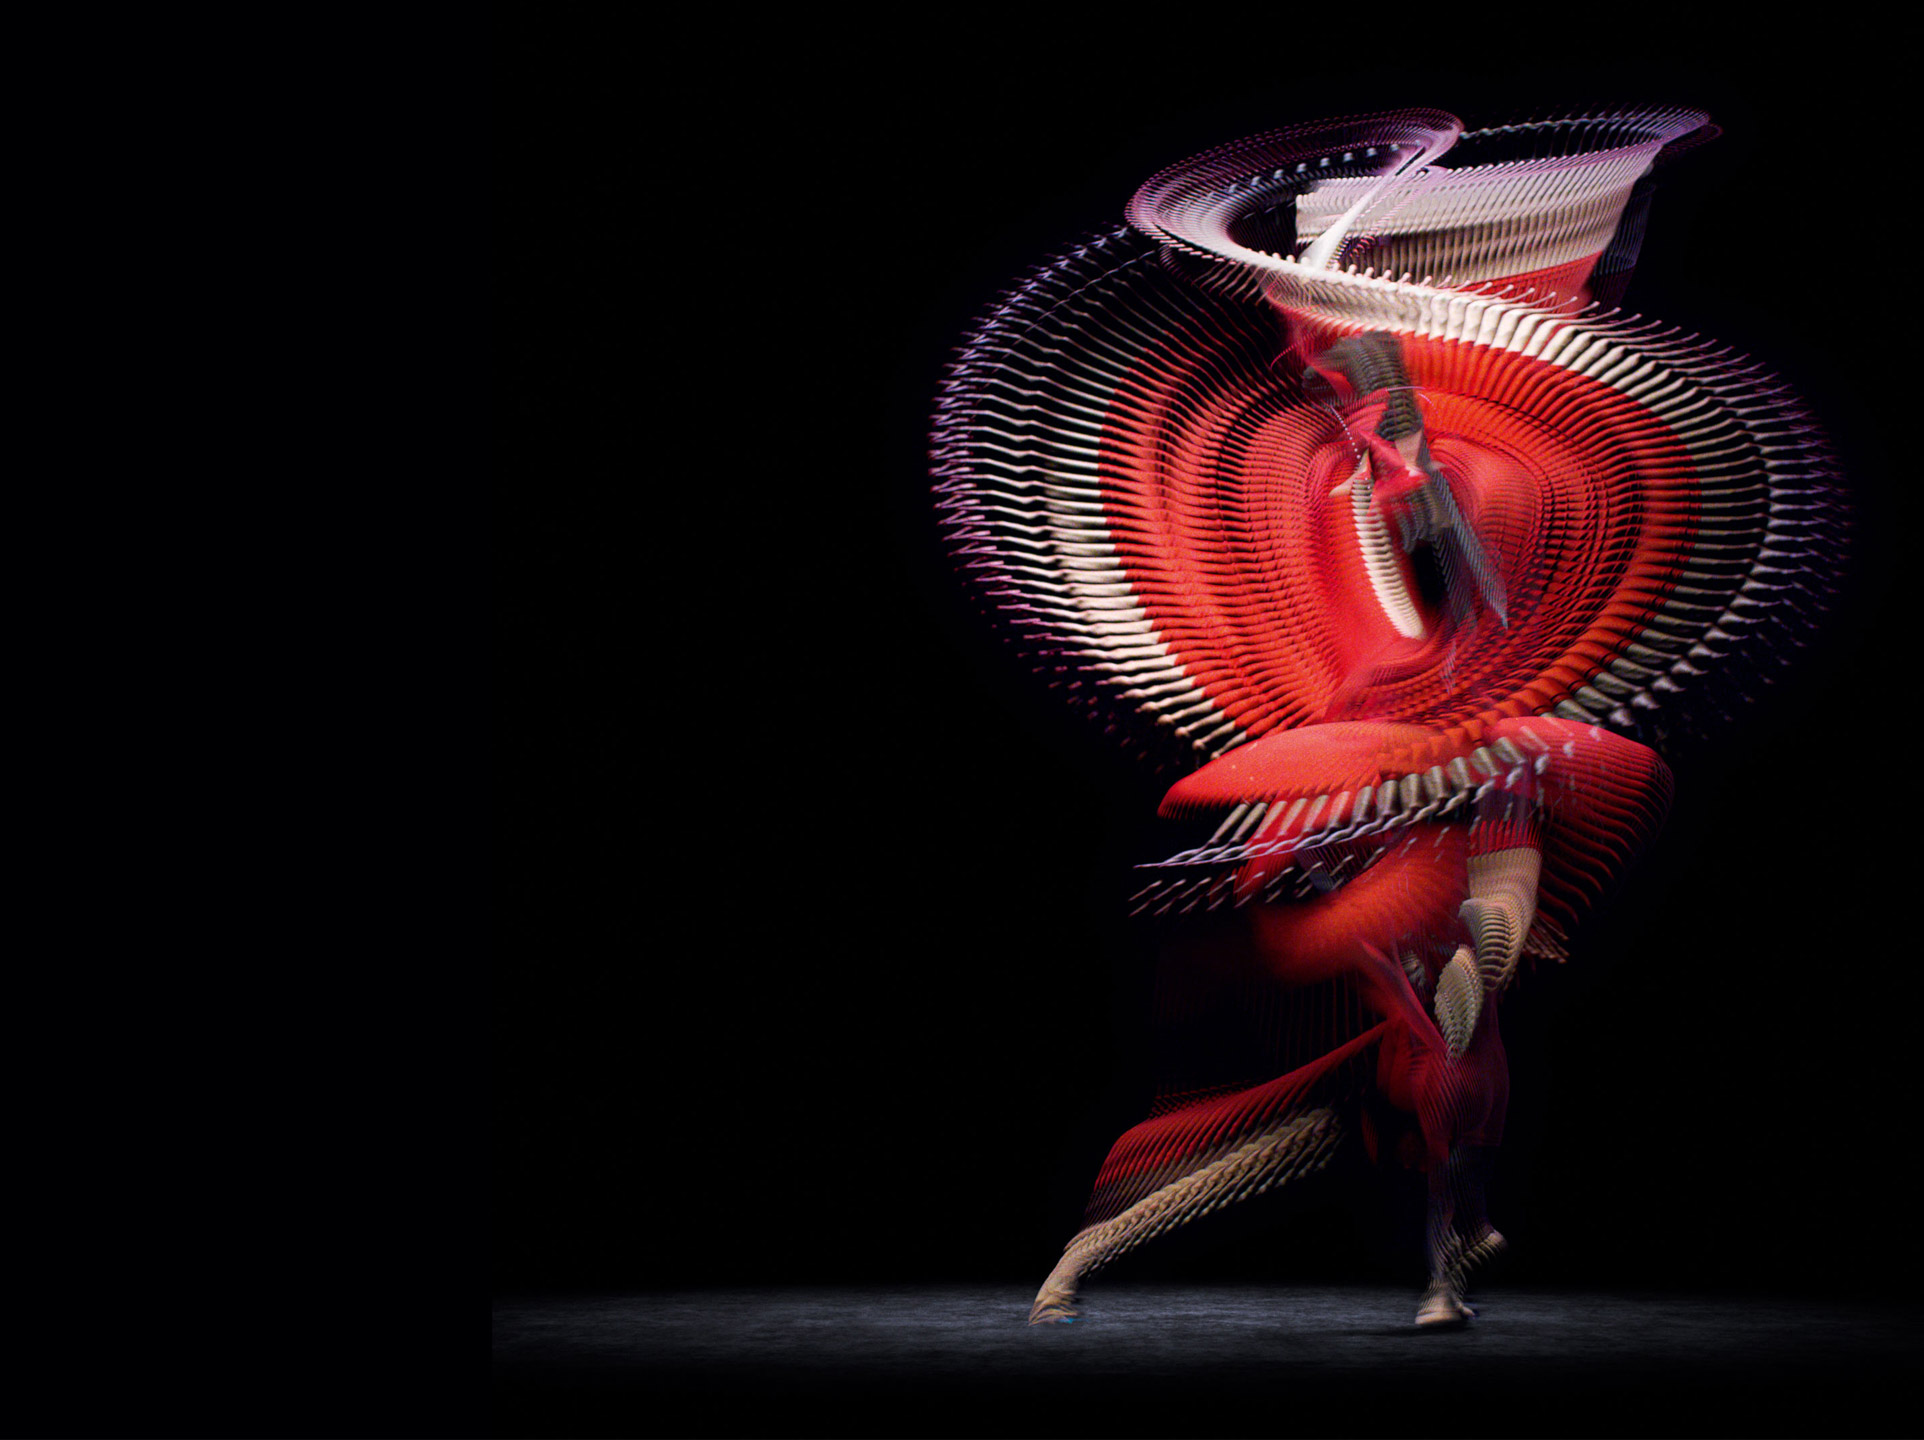 A dancer spins through a dark space, wearing a brilliant red dress which leaves traces through the air as she moves.